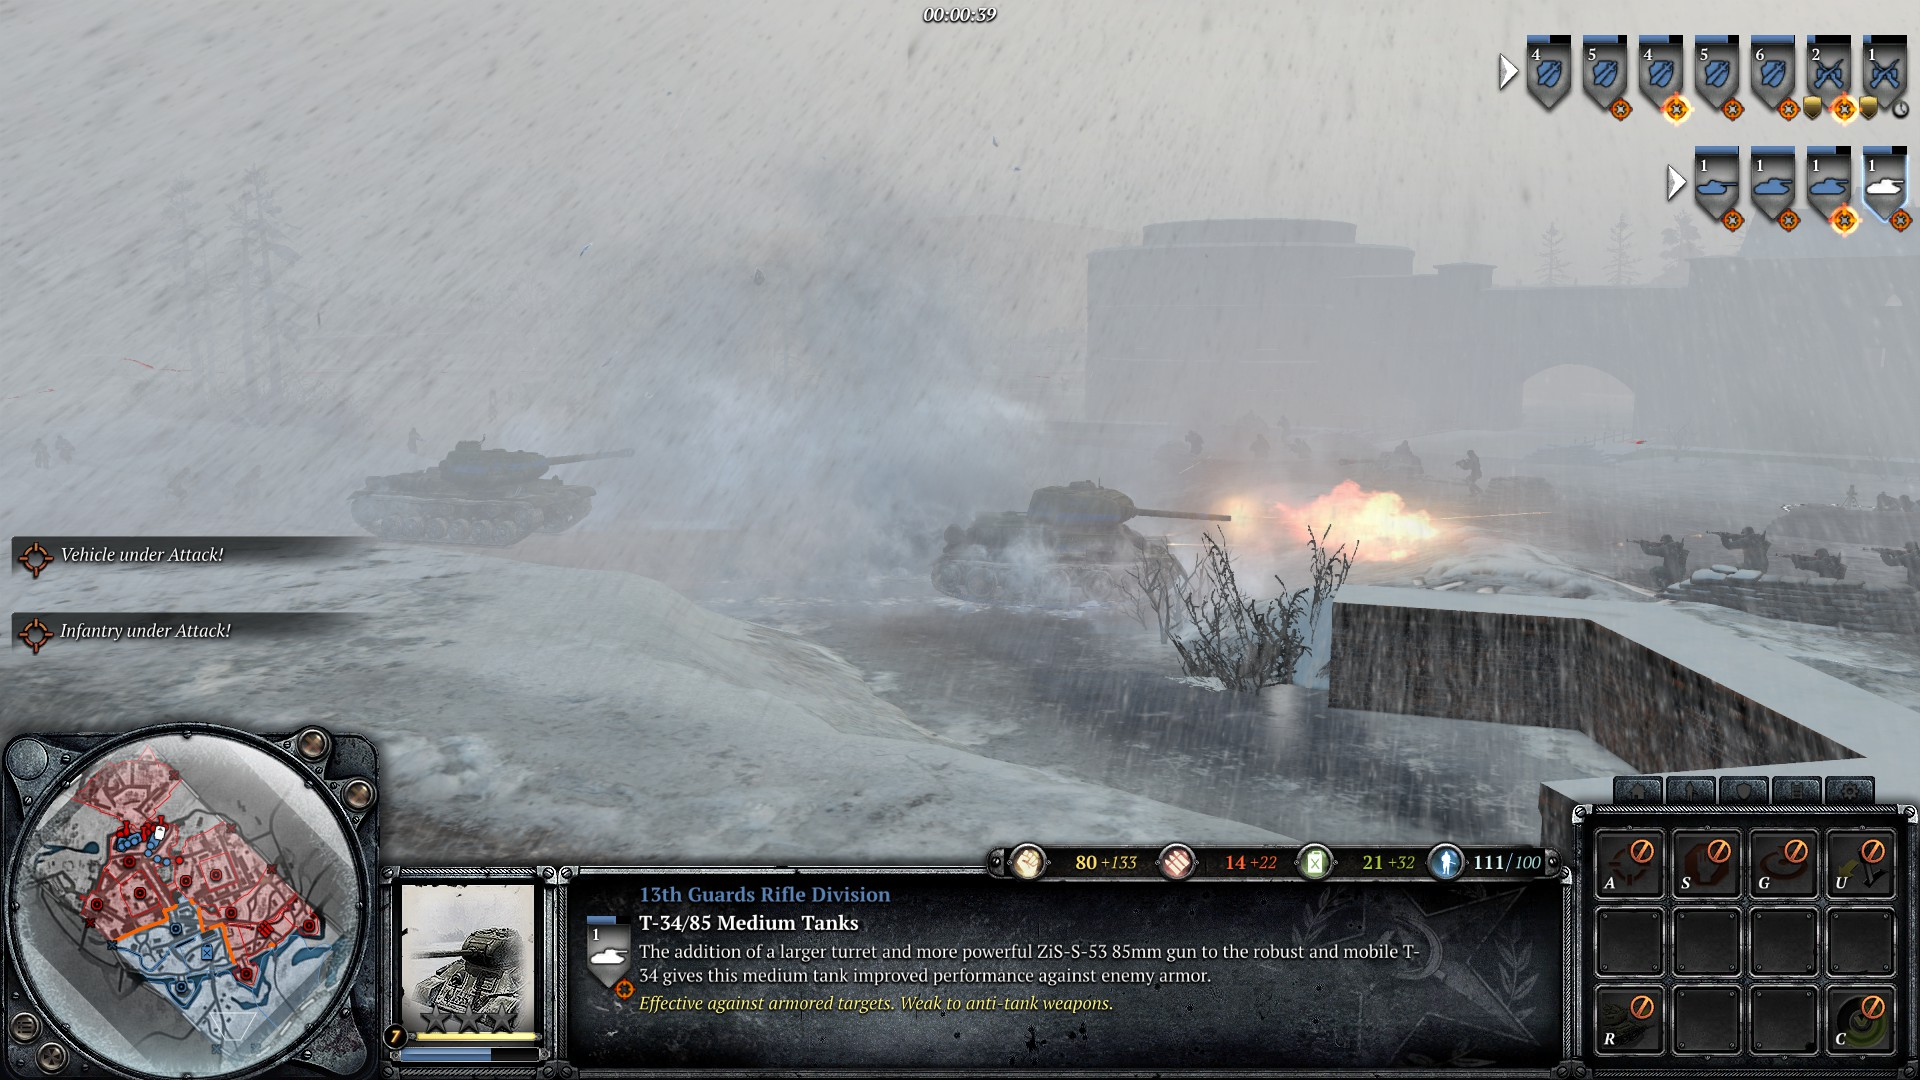 Case Blue Company Of Heroes 2 : Gaming benchmarks: sleeping dogs company of heroes 2 and